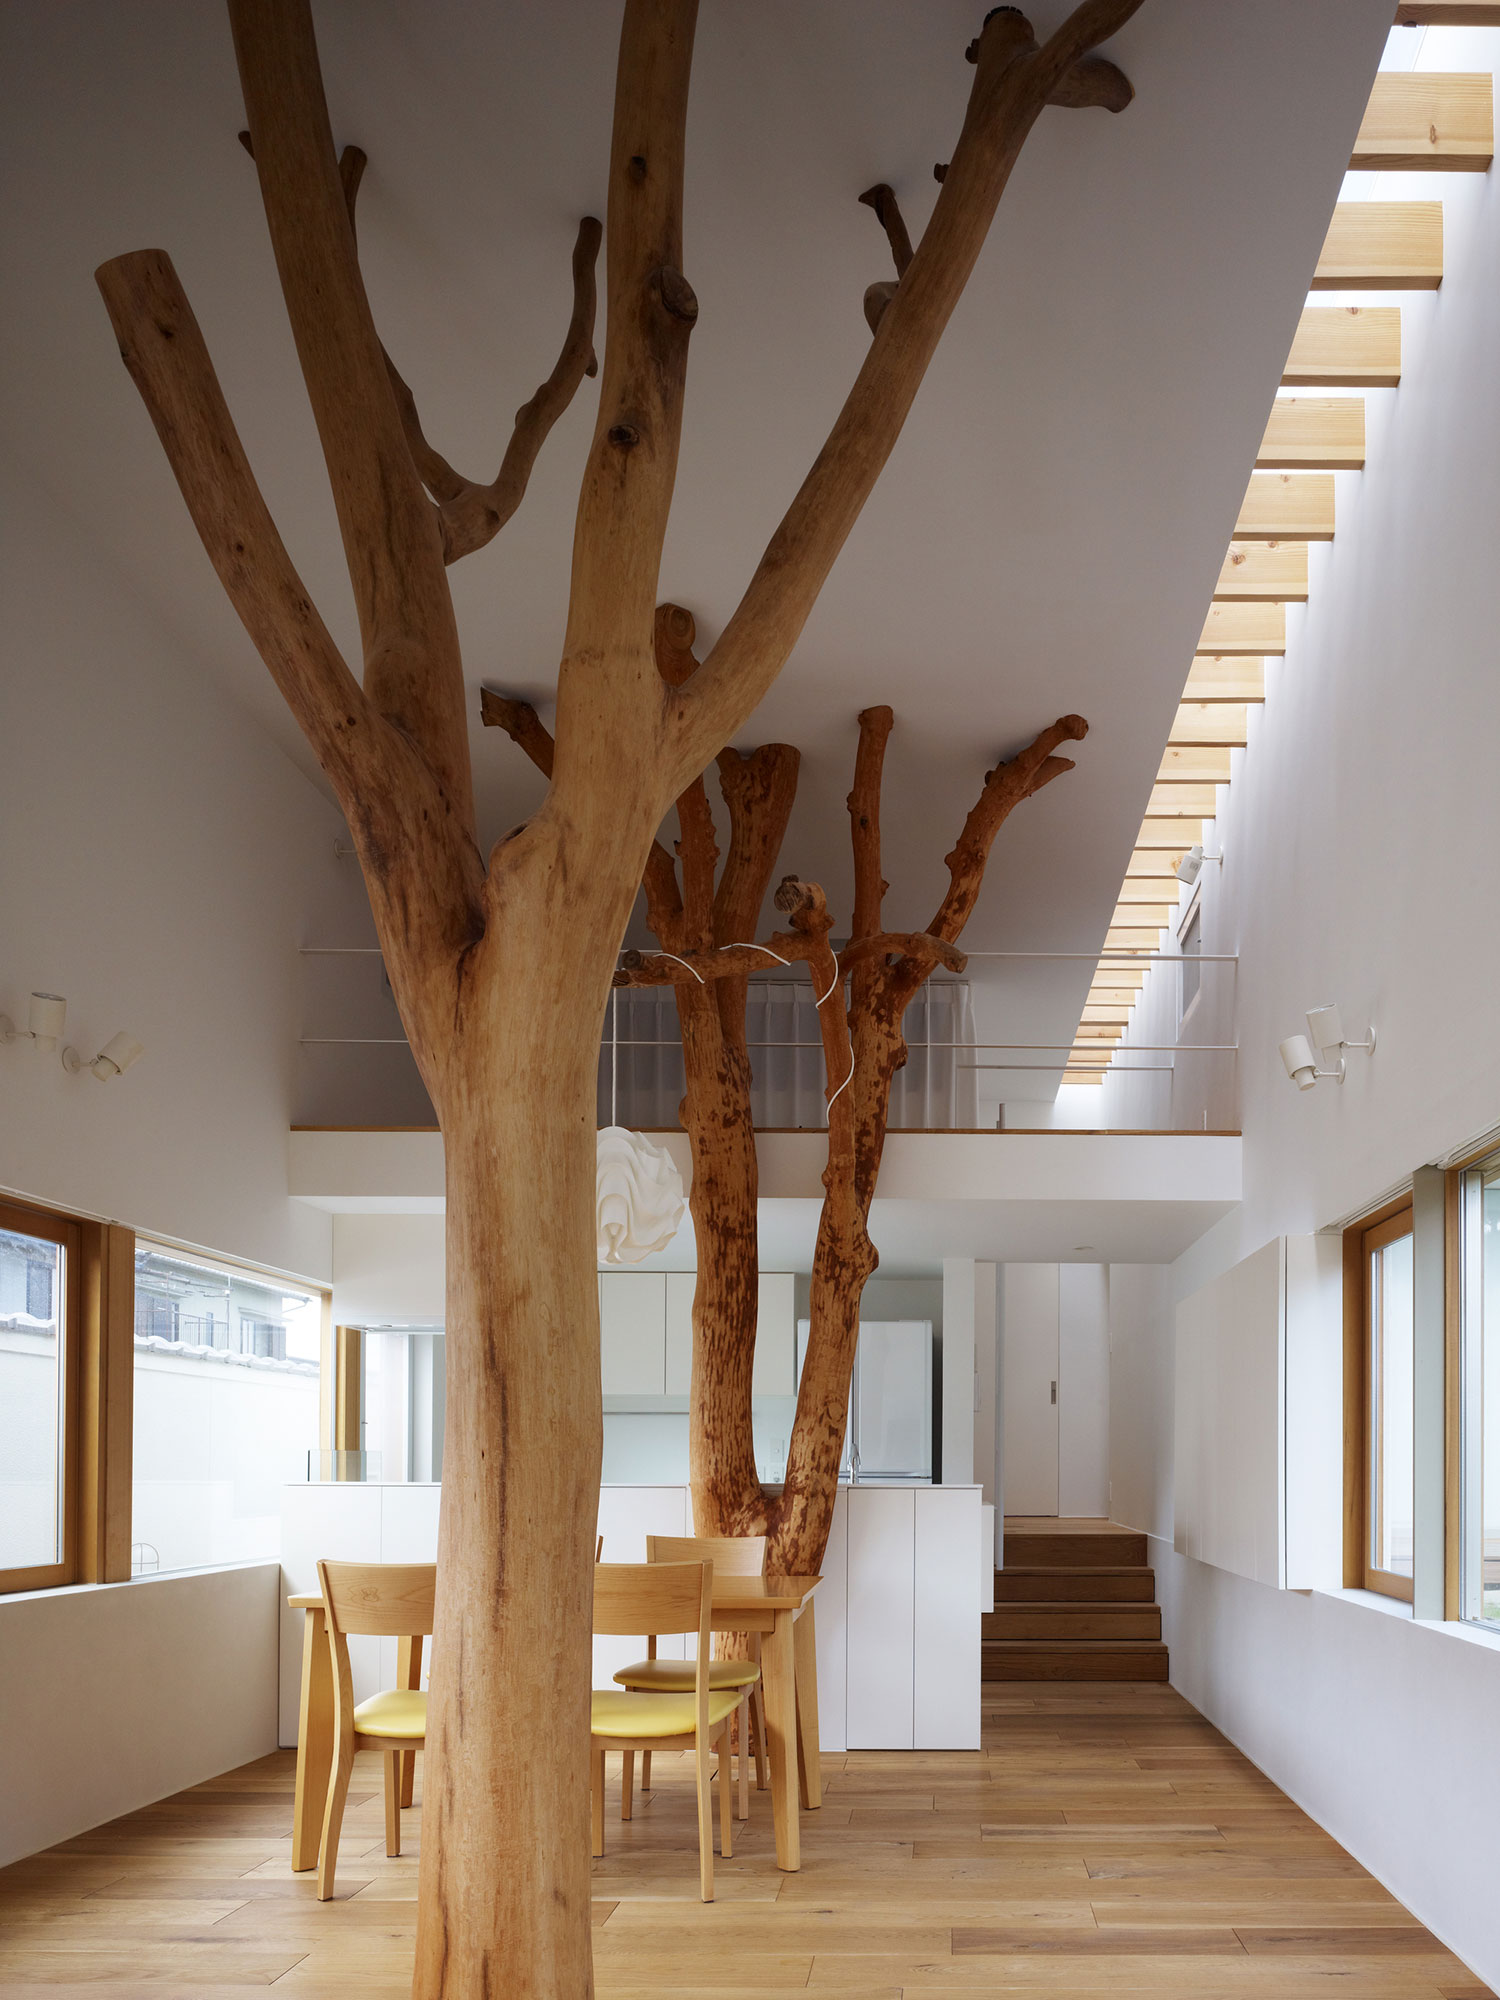 Garden Tree House by Hironaka Ogawa & Associates | Yellowtrace.